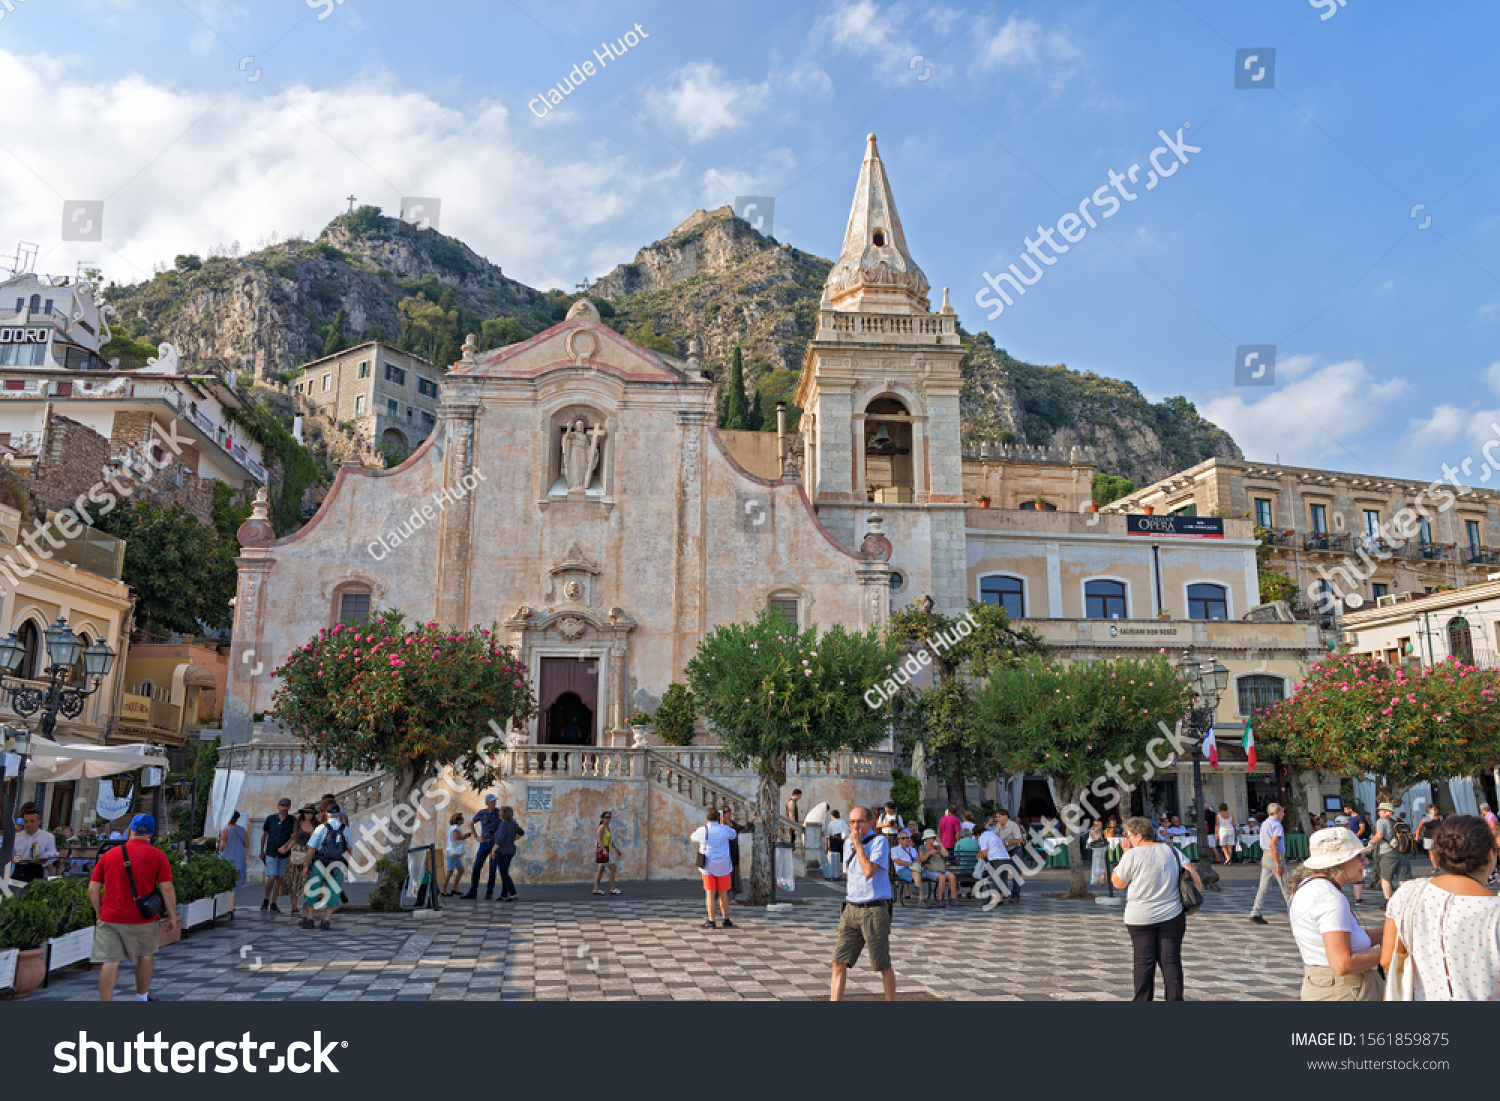 TAORMINA, SICILY, ITALY - SEPTEMBER 17, 2019: Tourists enjoy a late afternoon on Piazza IX Aprile (Square 9th of April) in front of the Church of San Giuseppe (St. Joseph) in Taormina, Sicily, Italy.